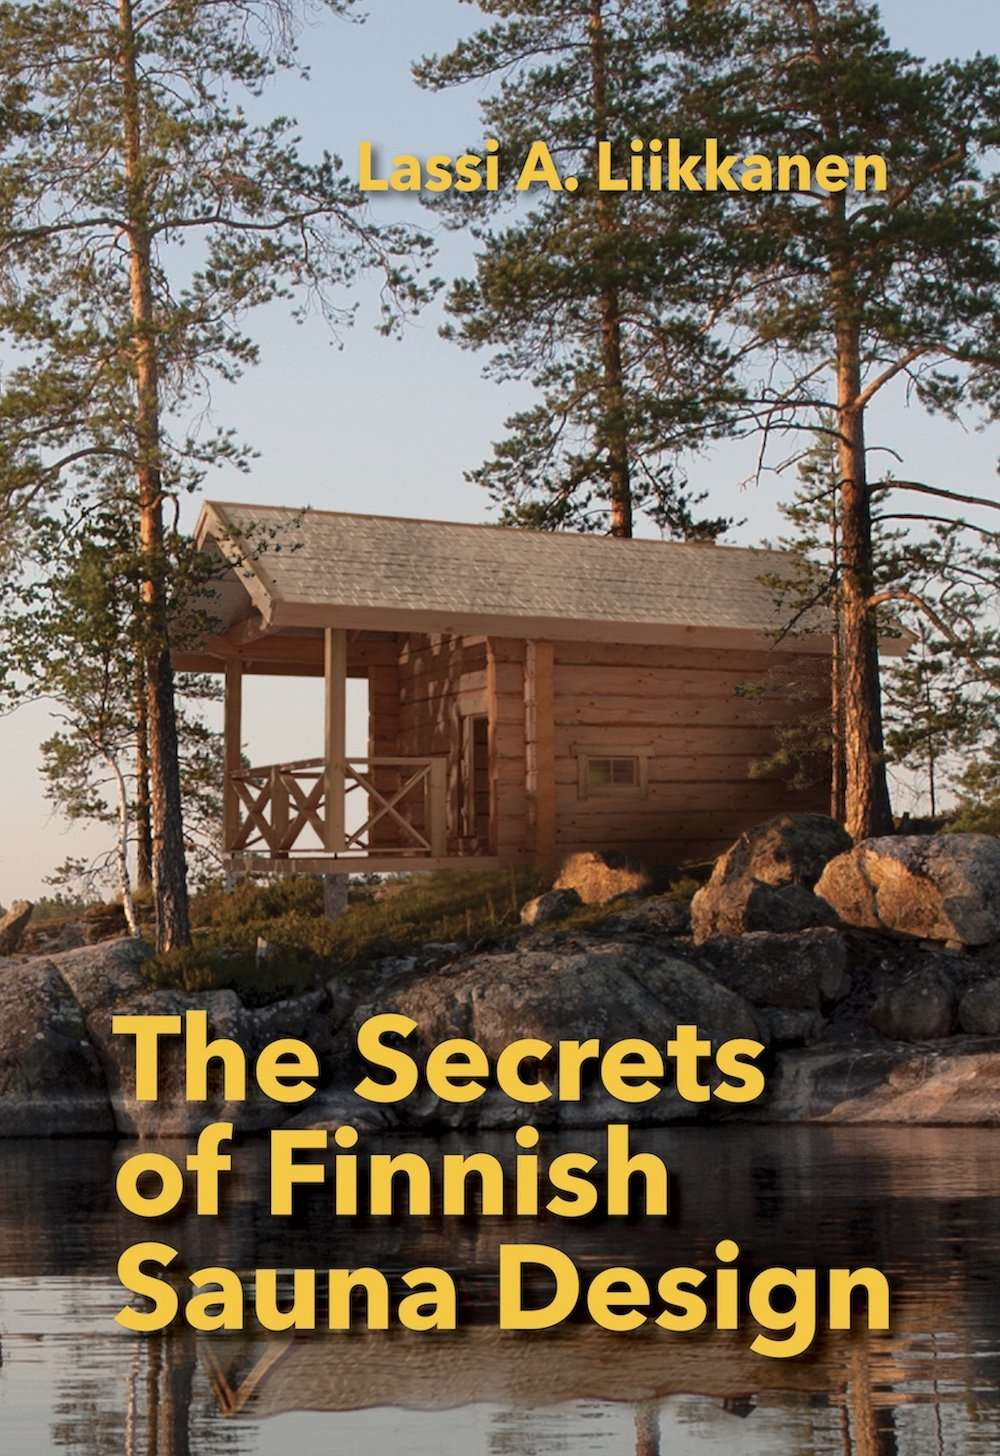 Liikkanen – Secrets of Finnish Sauna Design